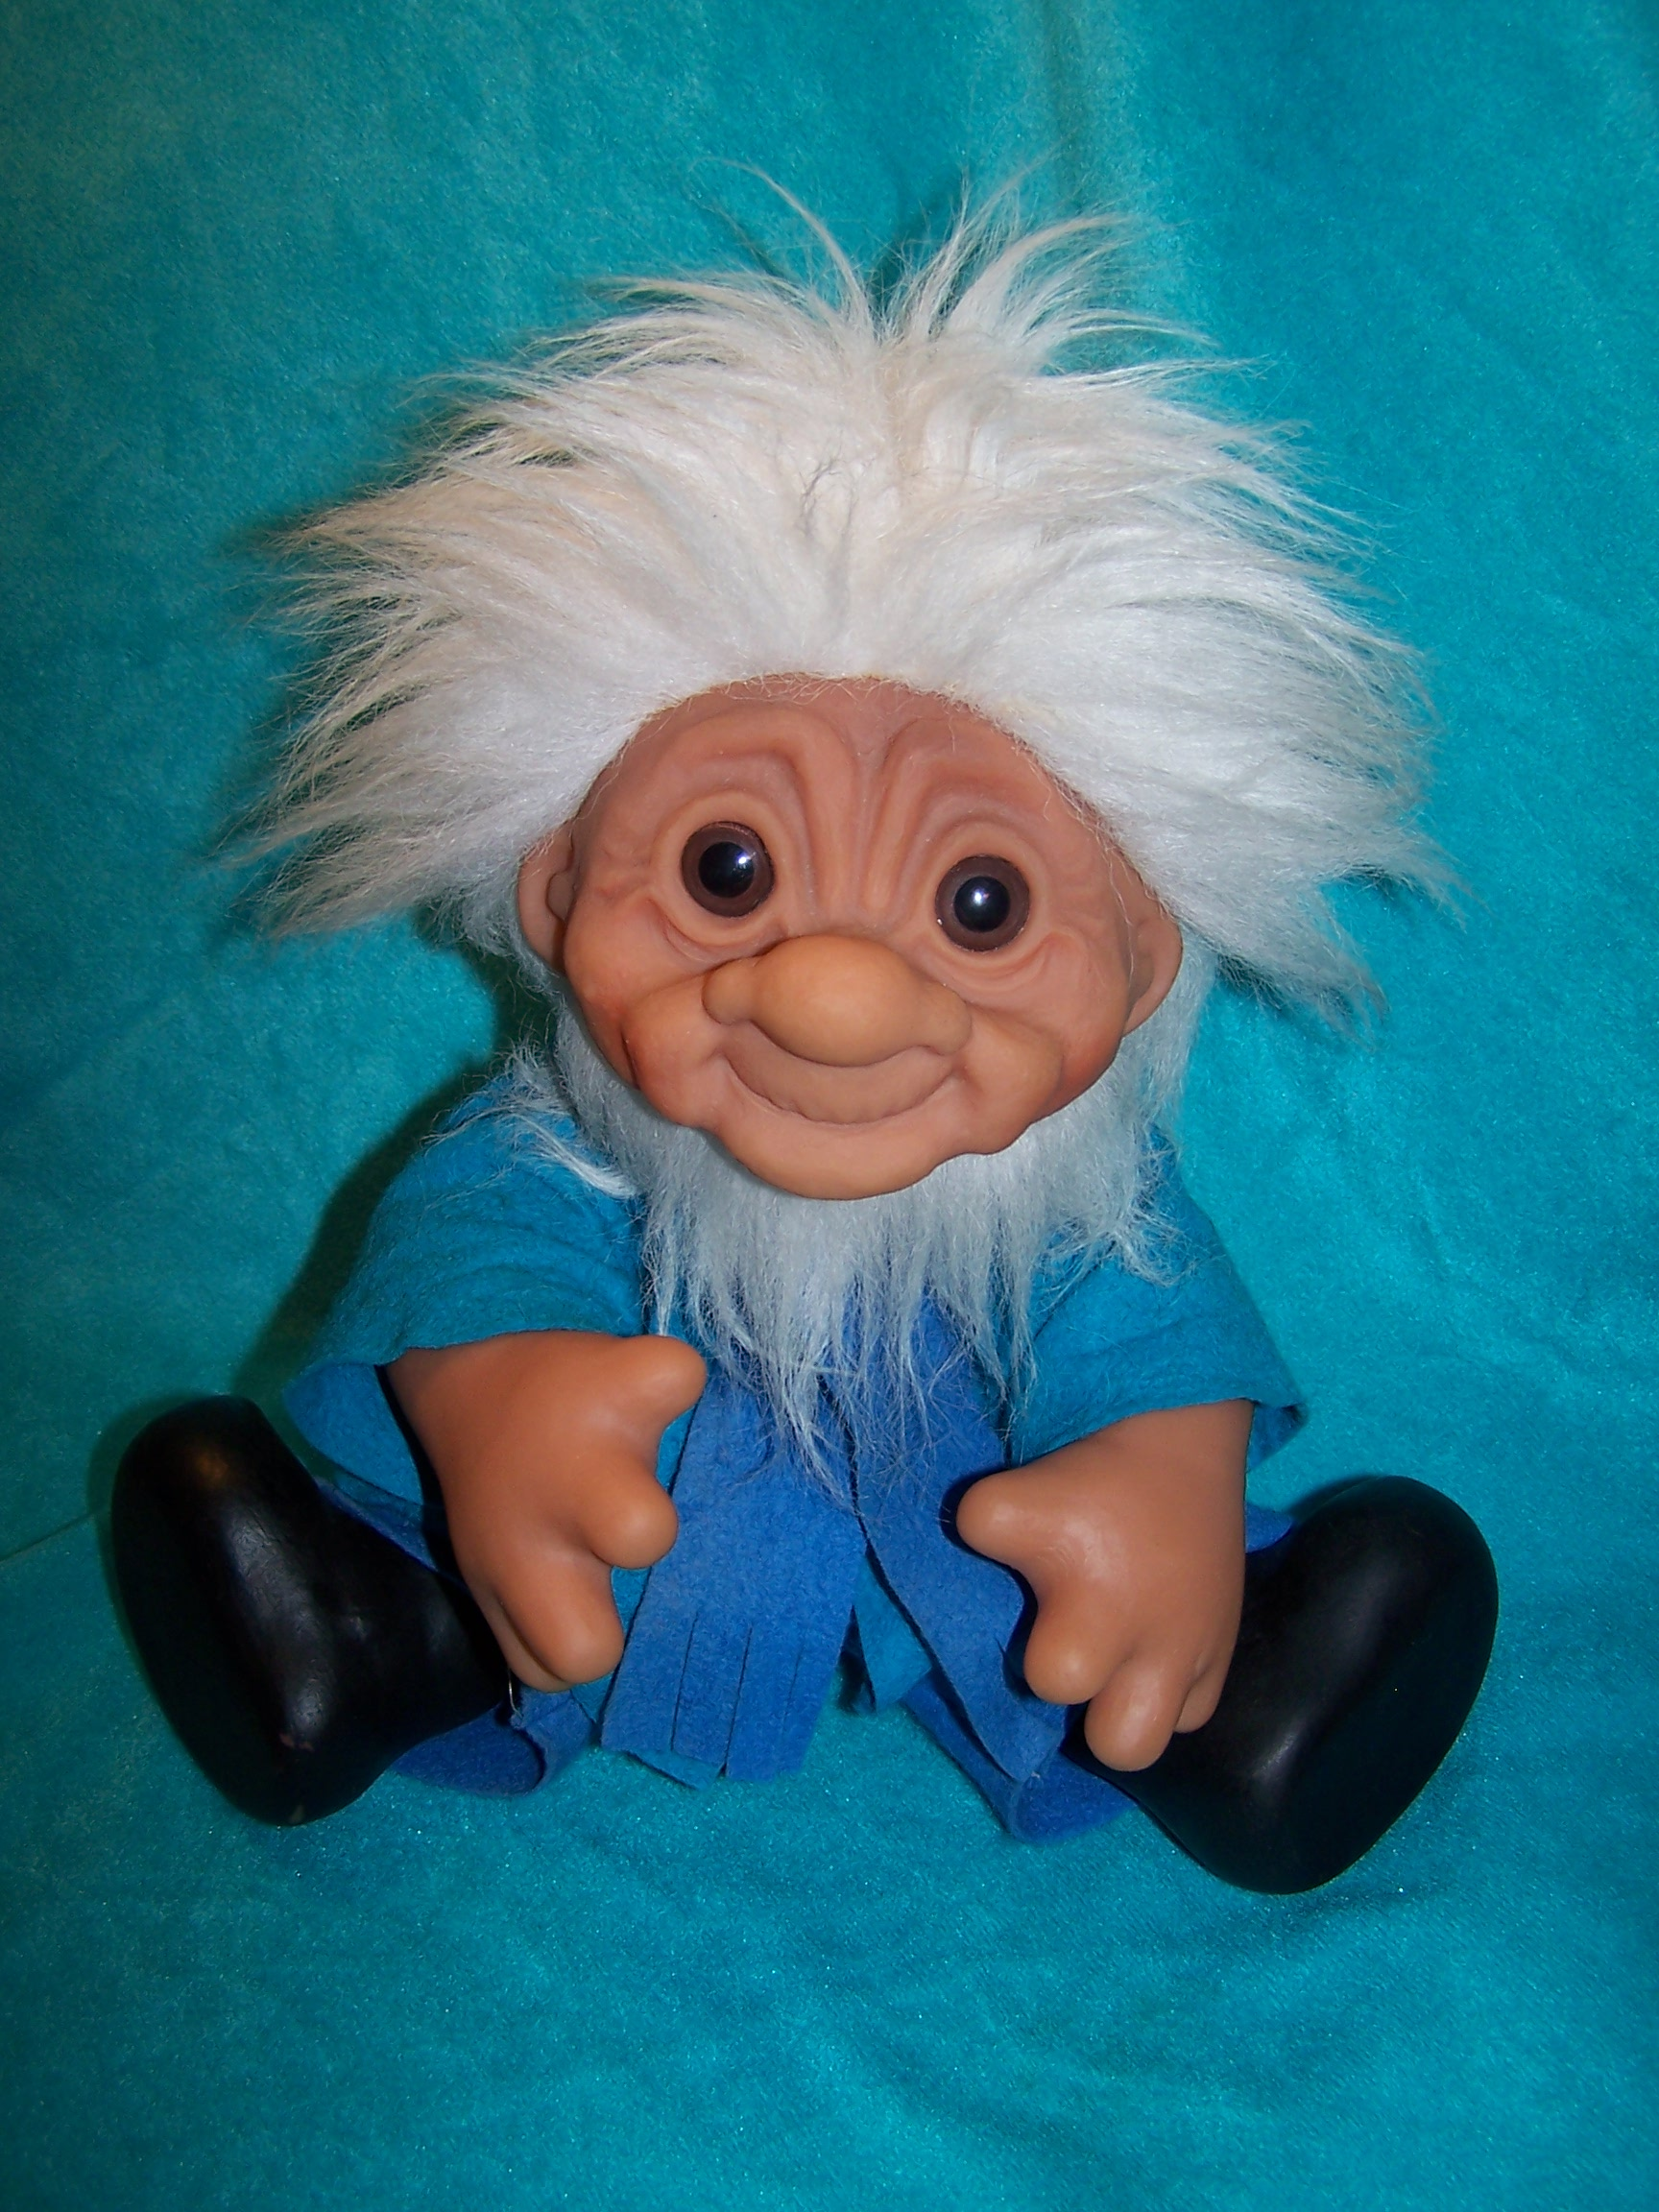 Image 6 of Norfin Troll Doll Grandpa, Thomas Dam, 1977 Denmark